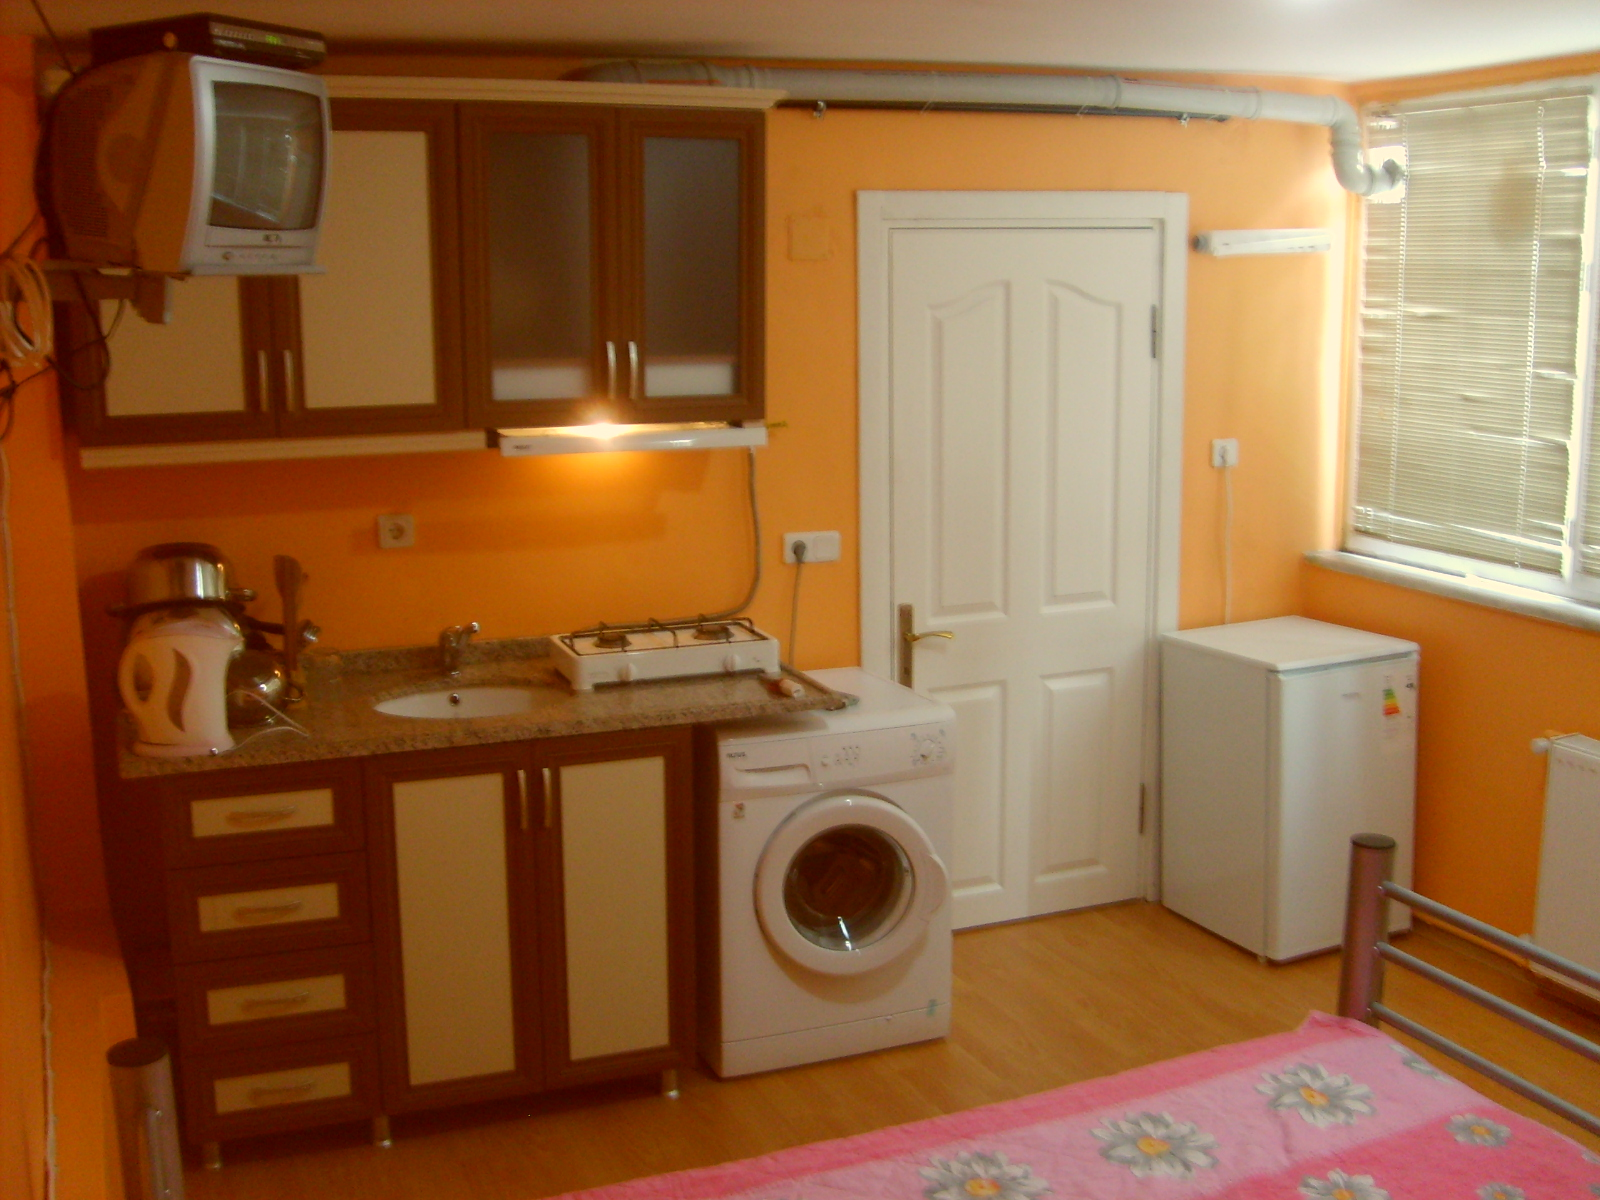 Istanbul apartment rentals erasmus apartments erasmus for Kitchen and bedroom designs